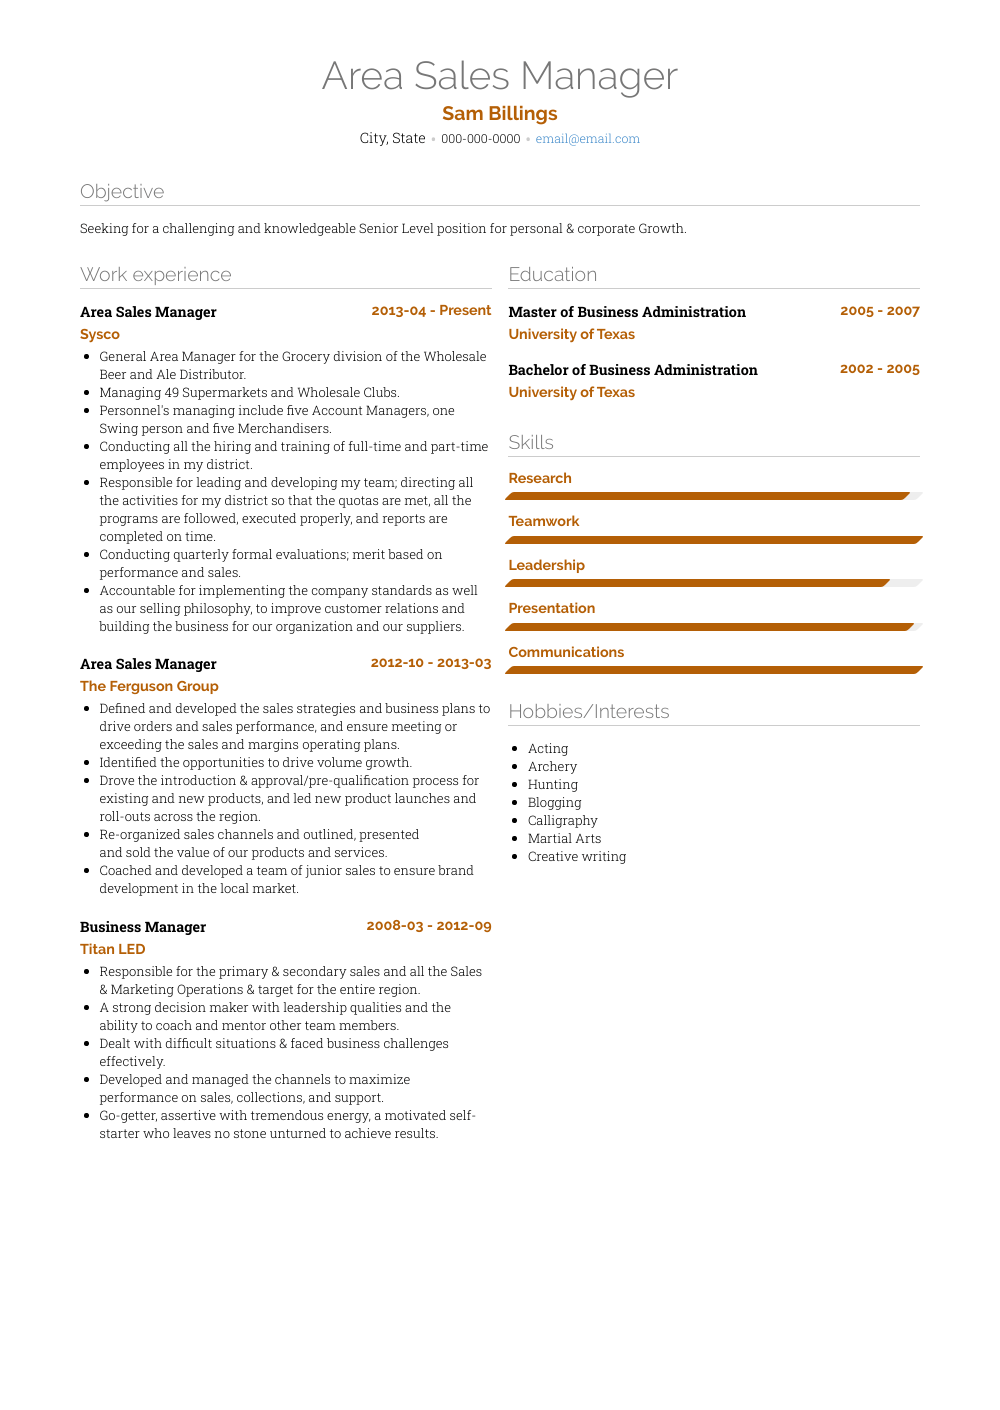 Area Sales Manager Resume Samples And Templates Visualcv